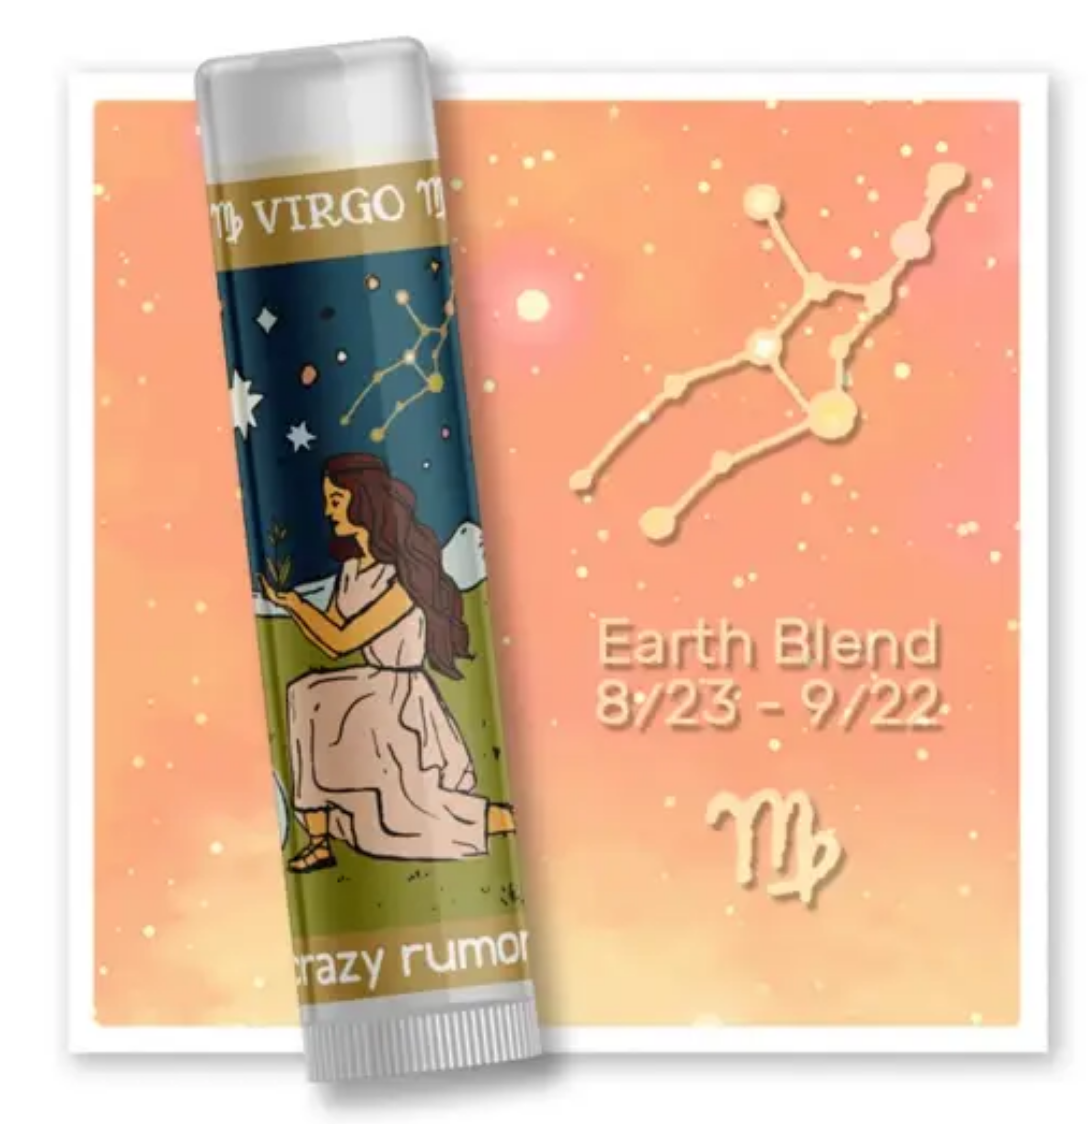 Crazy Rumors Virgo - Earth Blend Lip Balm